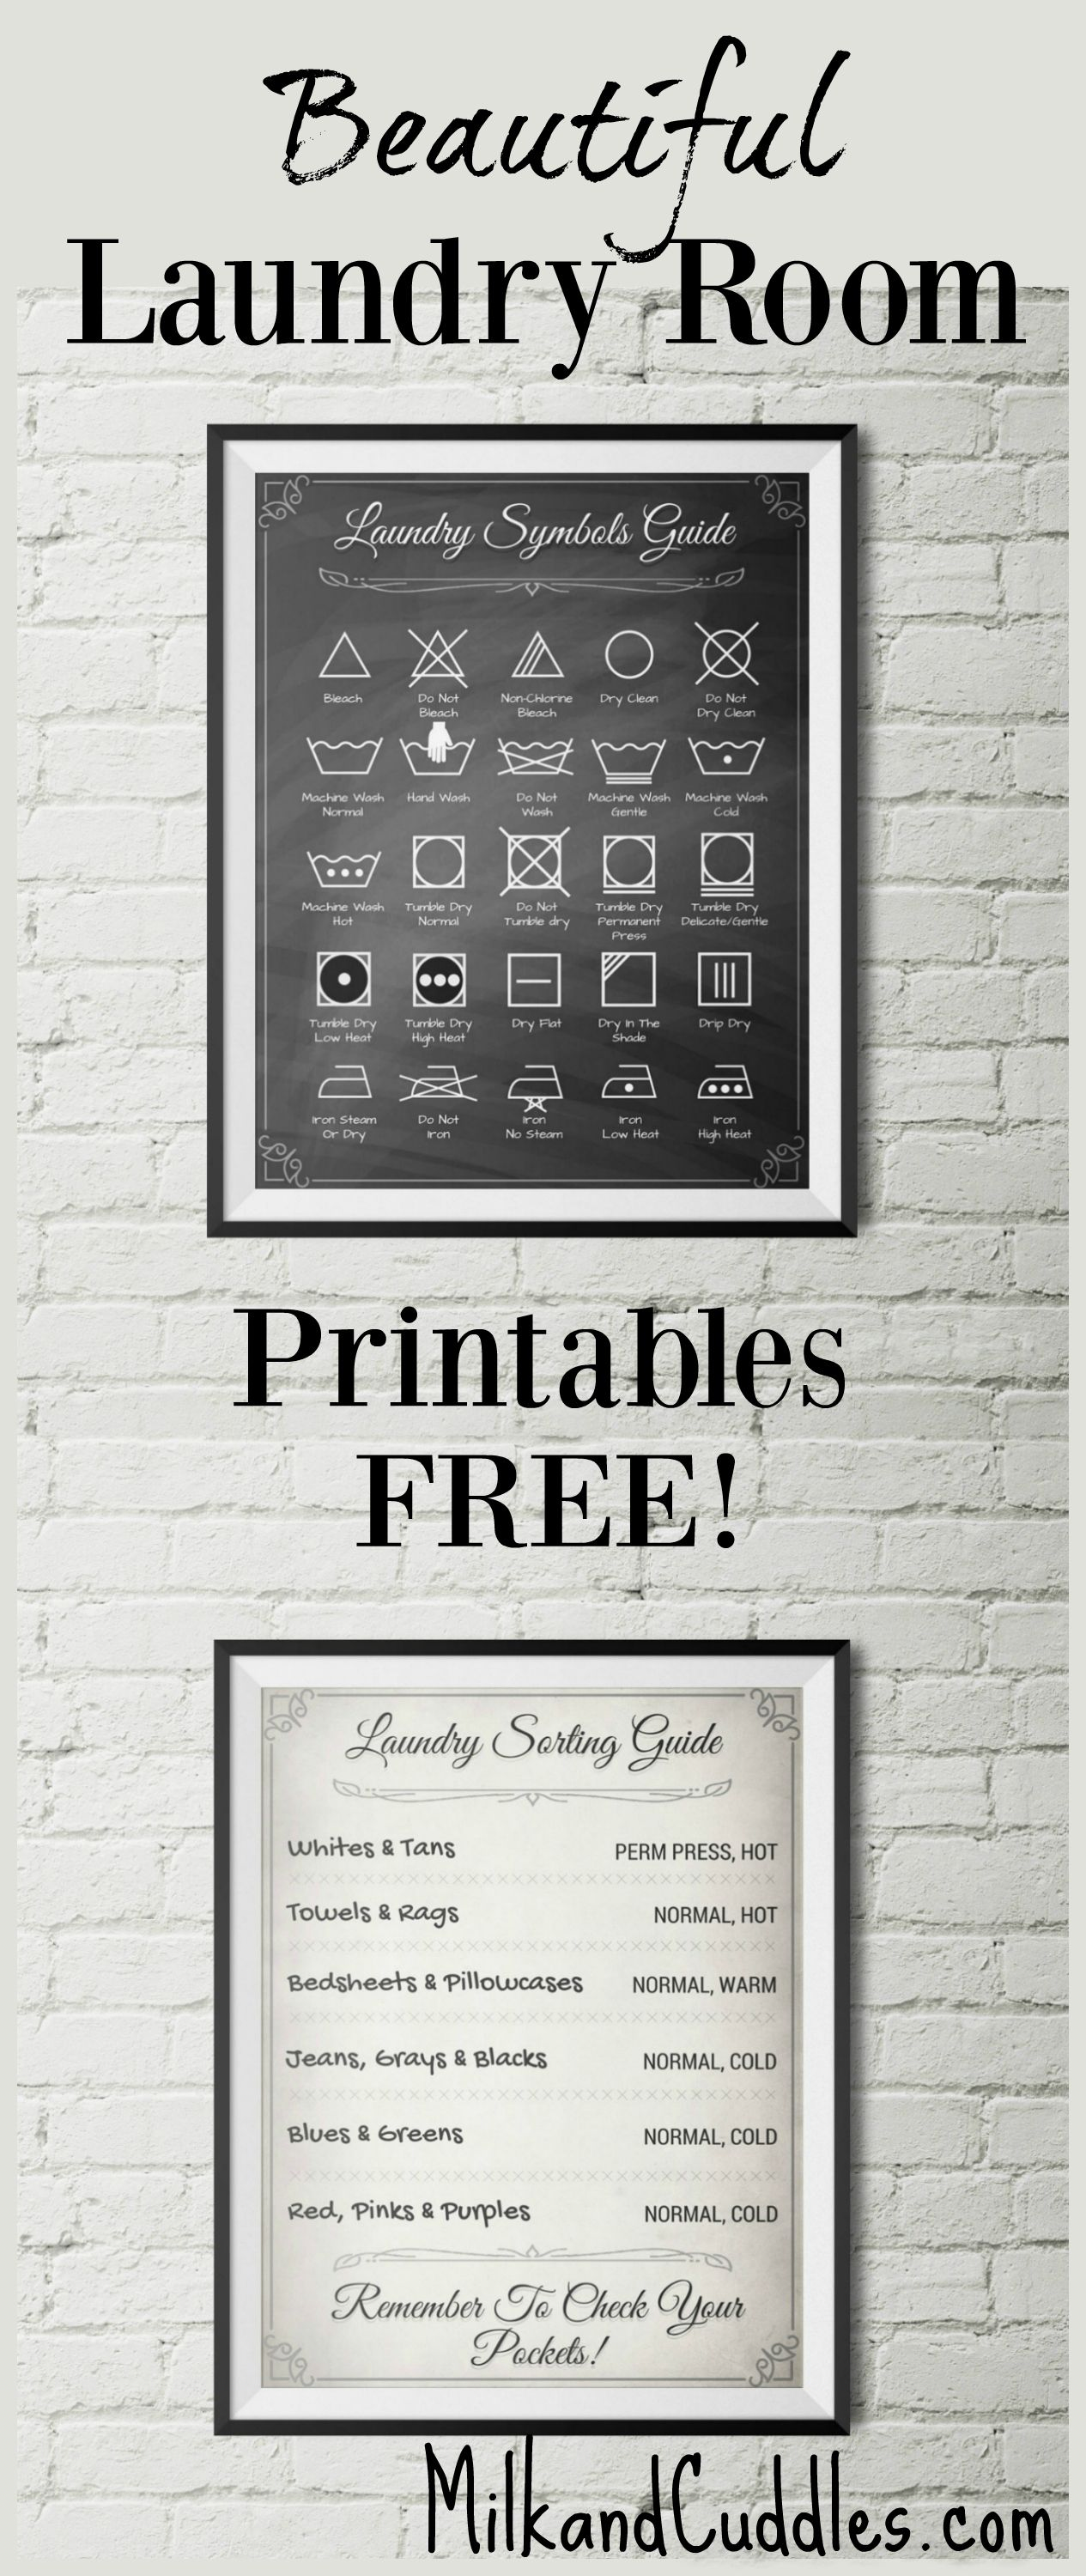 Free printables for laundry room laundry rooms free printables